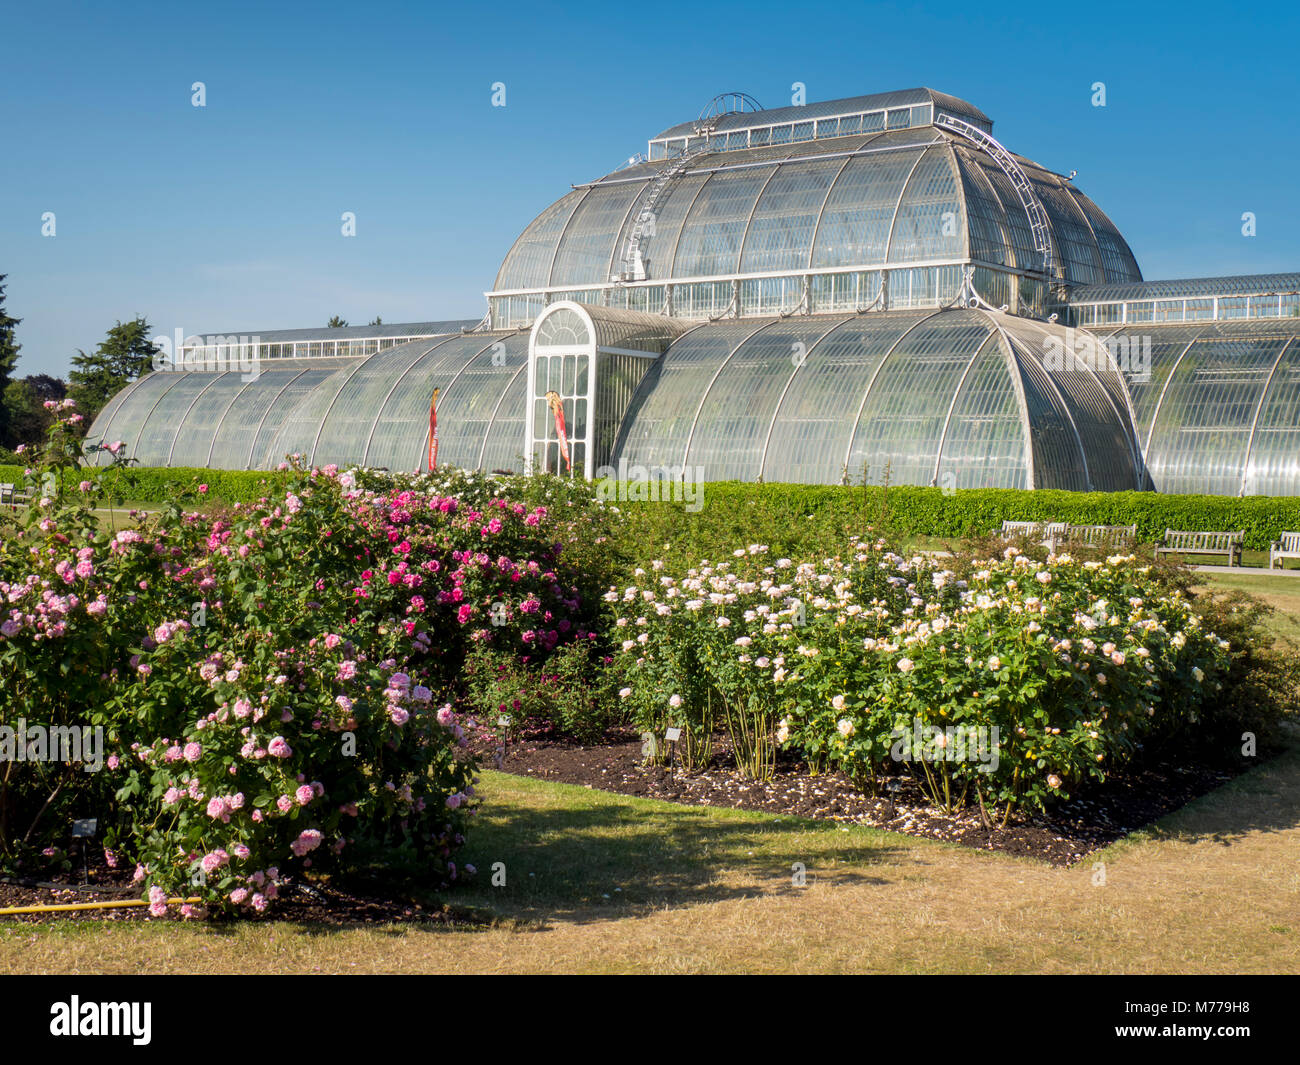 Rose beds and Palm House, Kew Gardens, UNESCO World Heritage Site, Kew, Greater London, England, United Kingdom, - Stock Image